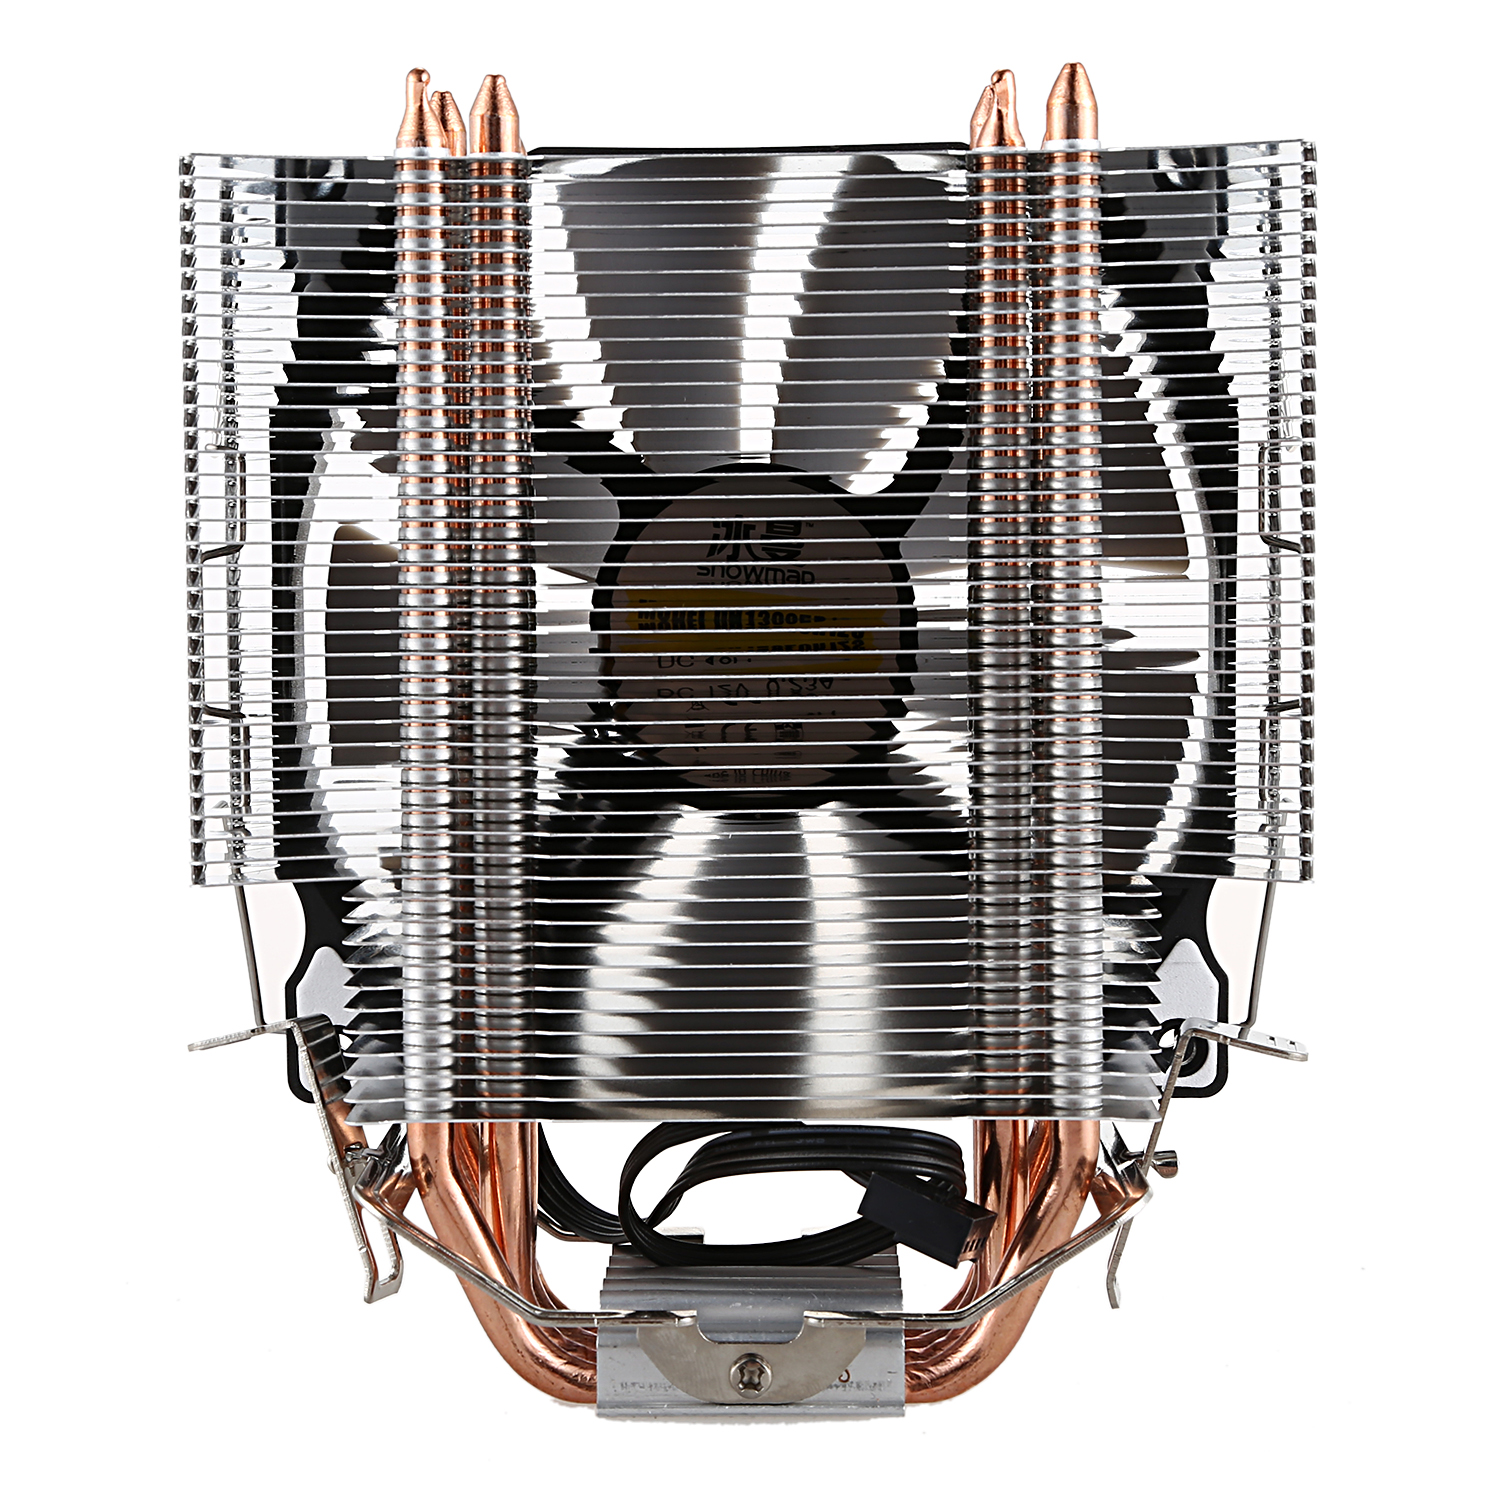 Image 2 - SNOWMAN CPU Cooler Master 5 Direct Contact Heatpipes freeze Tower Cooling System CPU Cooling Fan with PWM Fans-in Fans & Cooling from Computer & Office